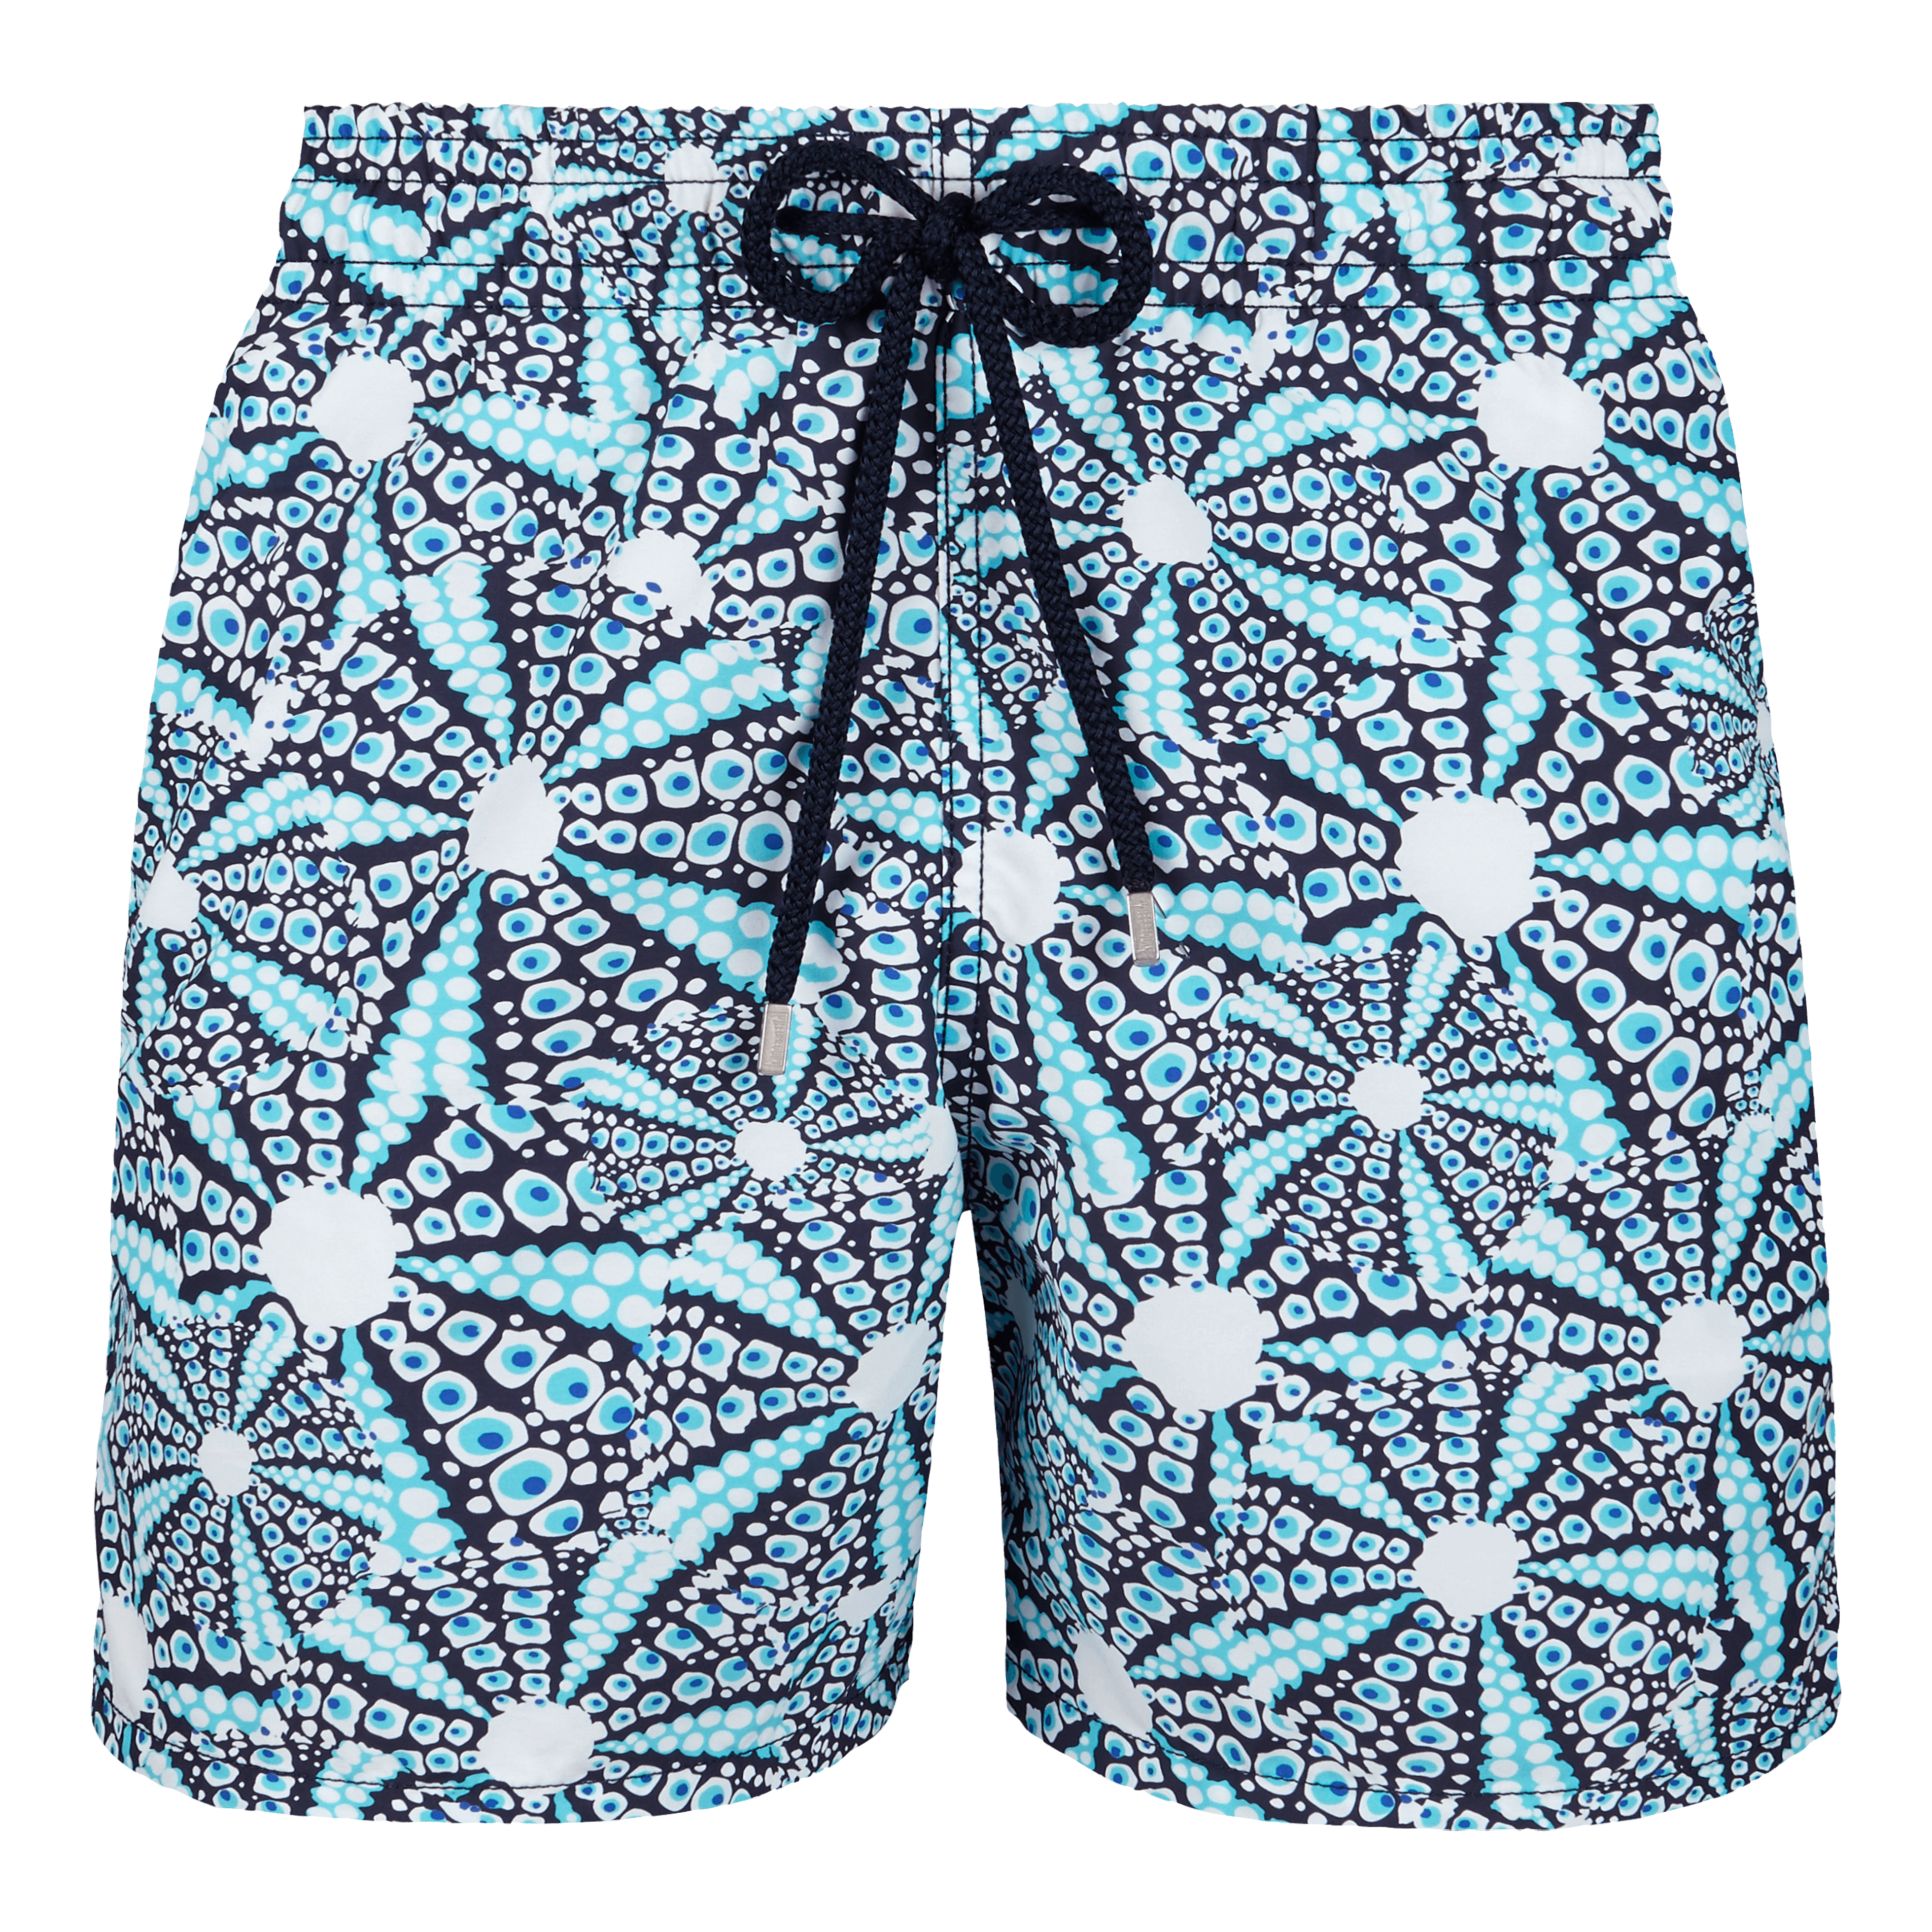 Red Balloon Mens Beach Board Shorts Quick Dry Summer Casual Swimming Soft Fabric with Pocket